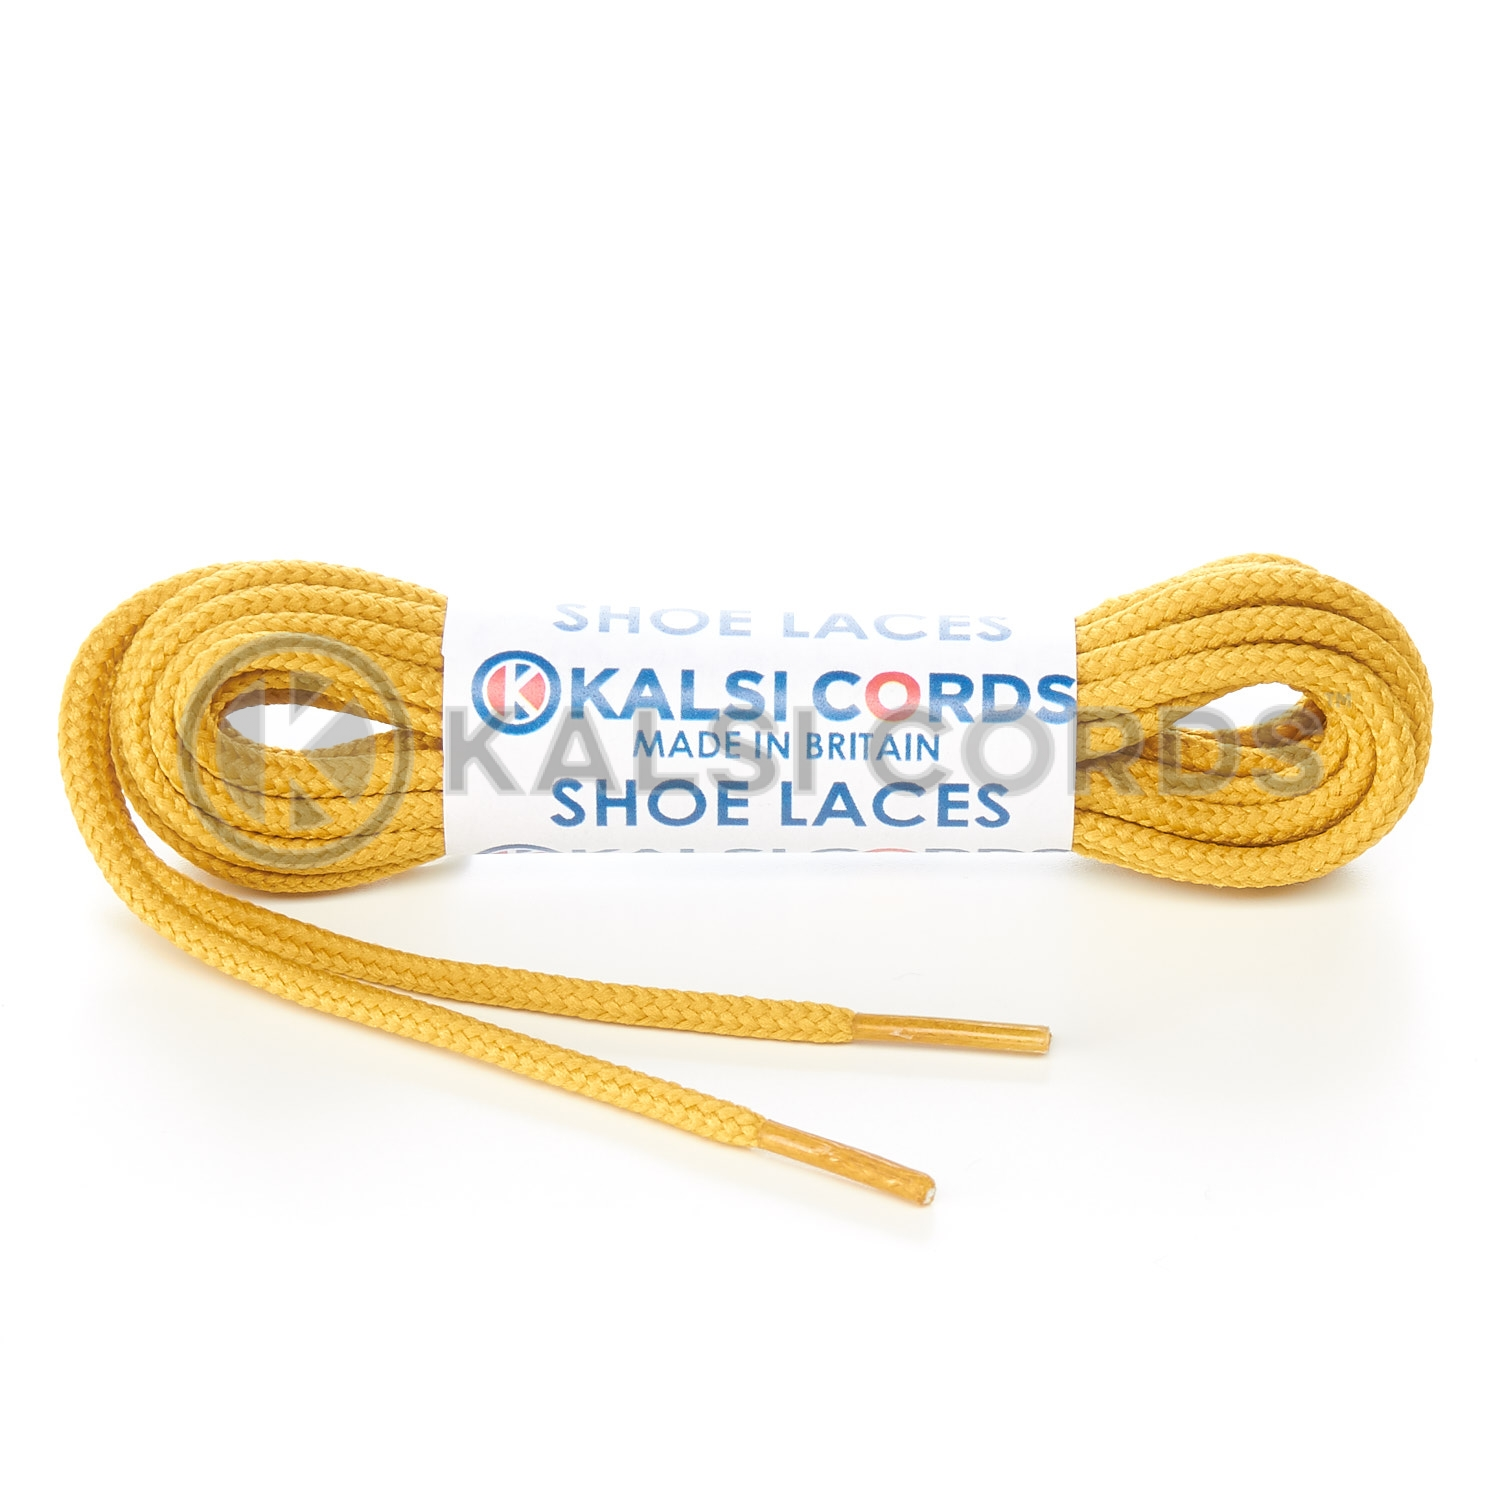 T460 2mm Thin Fine Round Cord Shoe Laces Sovereign Gold PG930 Kids Trainers Adults Brogue Formal Boots Kalsi Cords